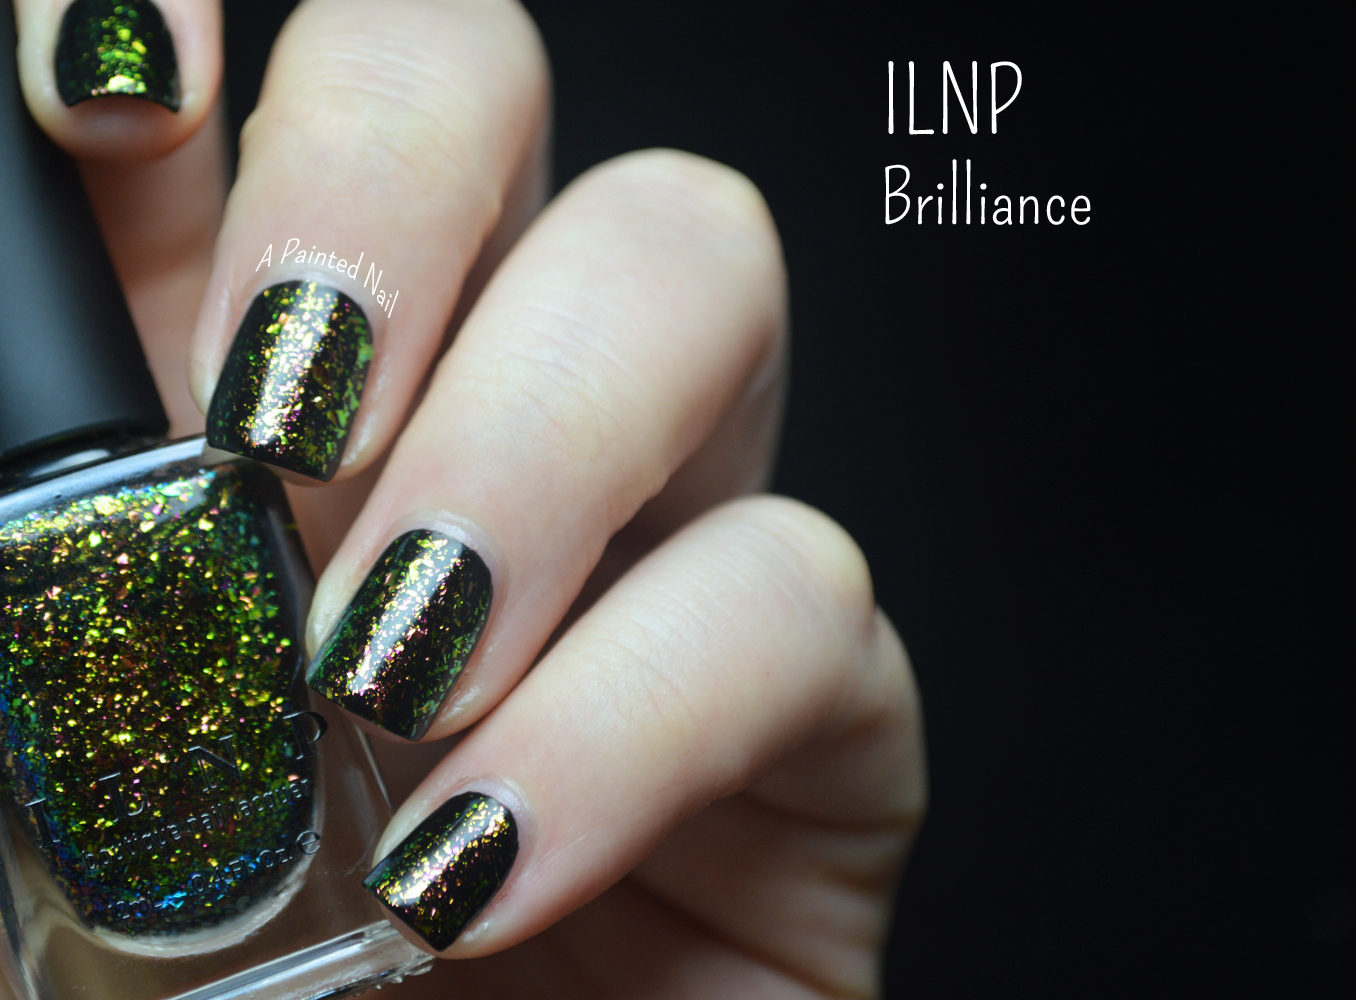 ILNP Brilliance